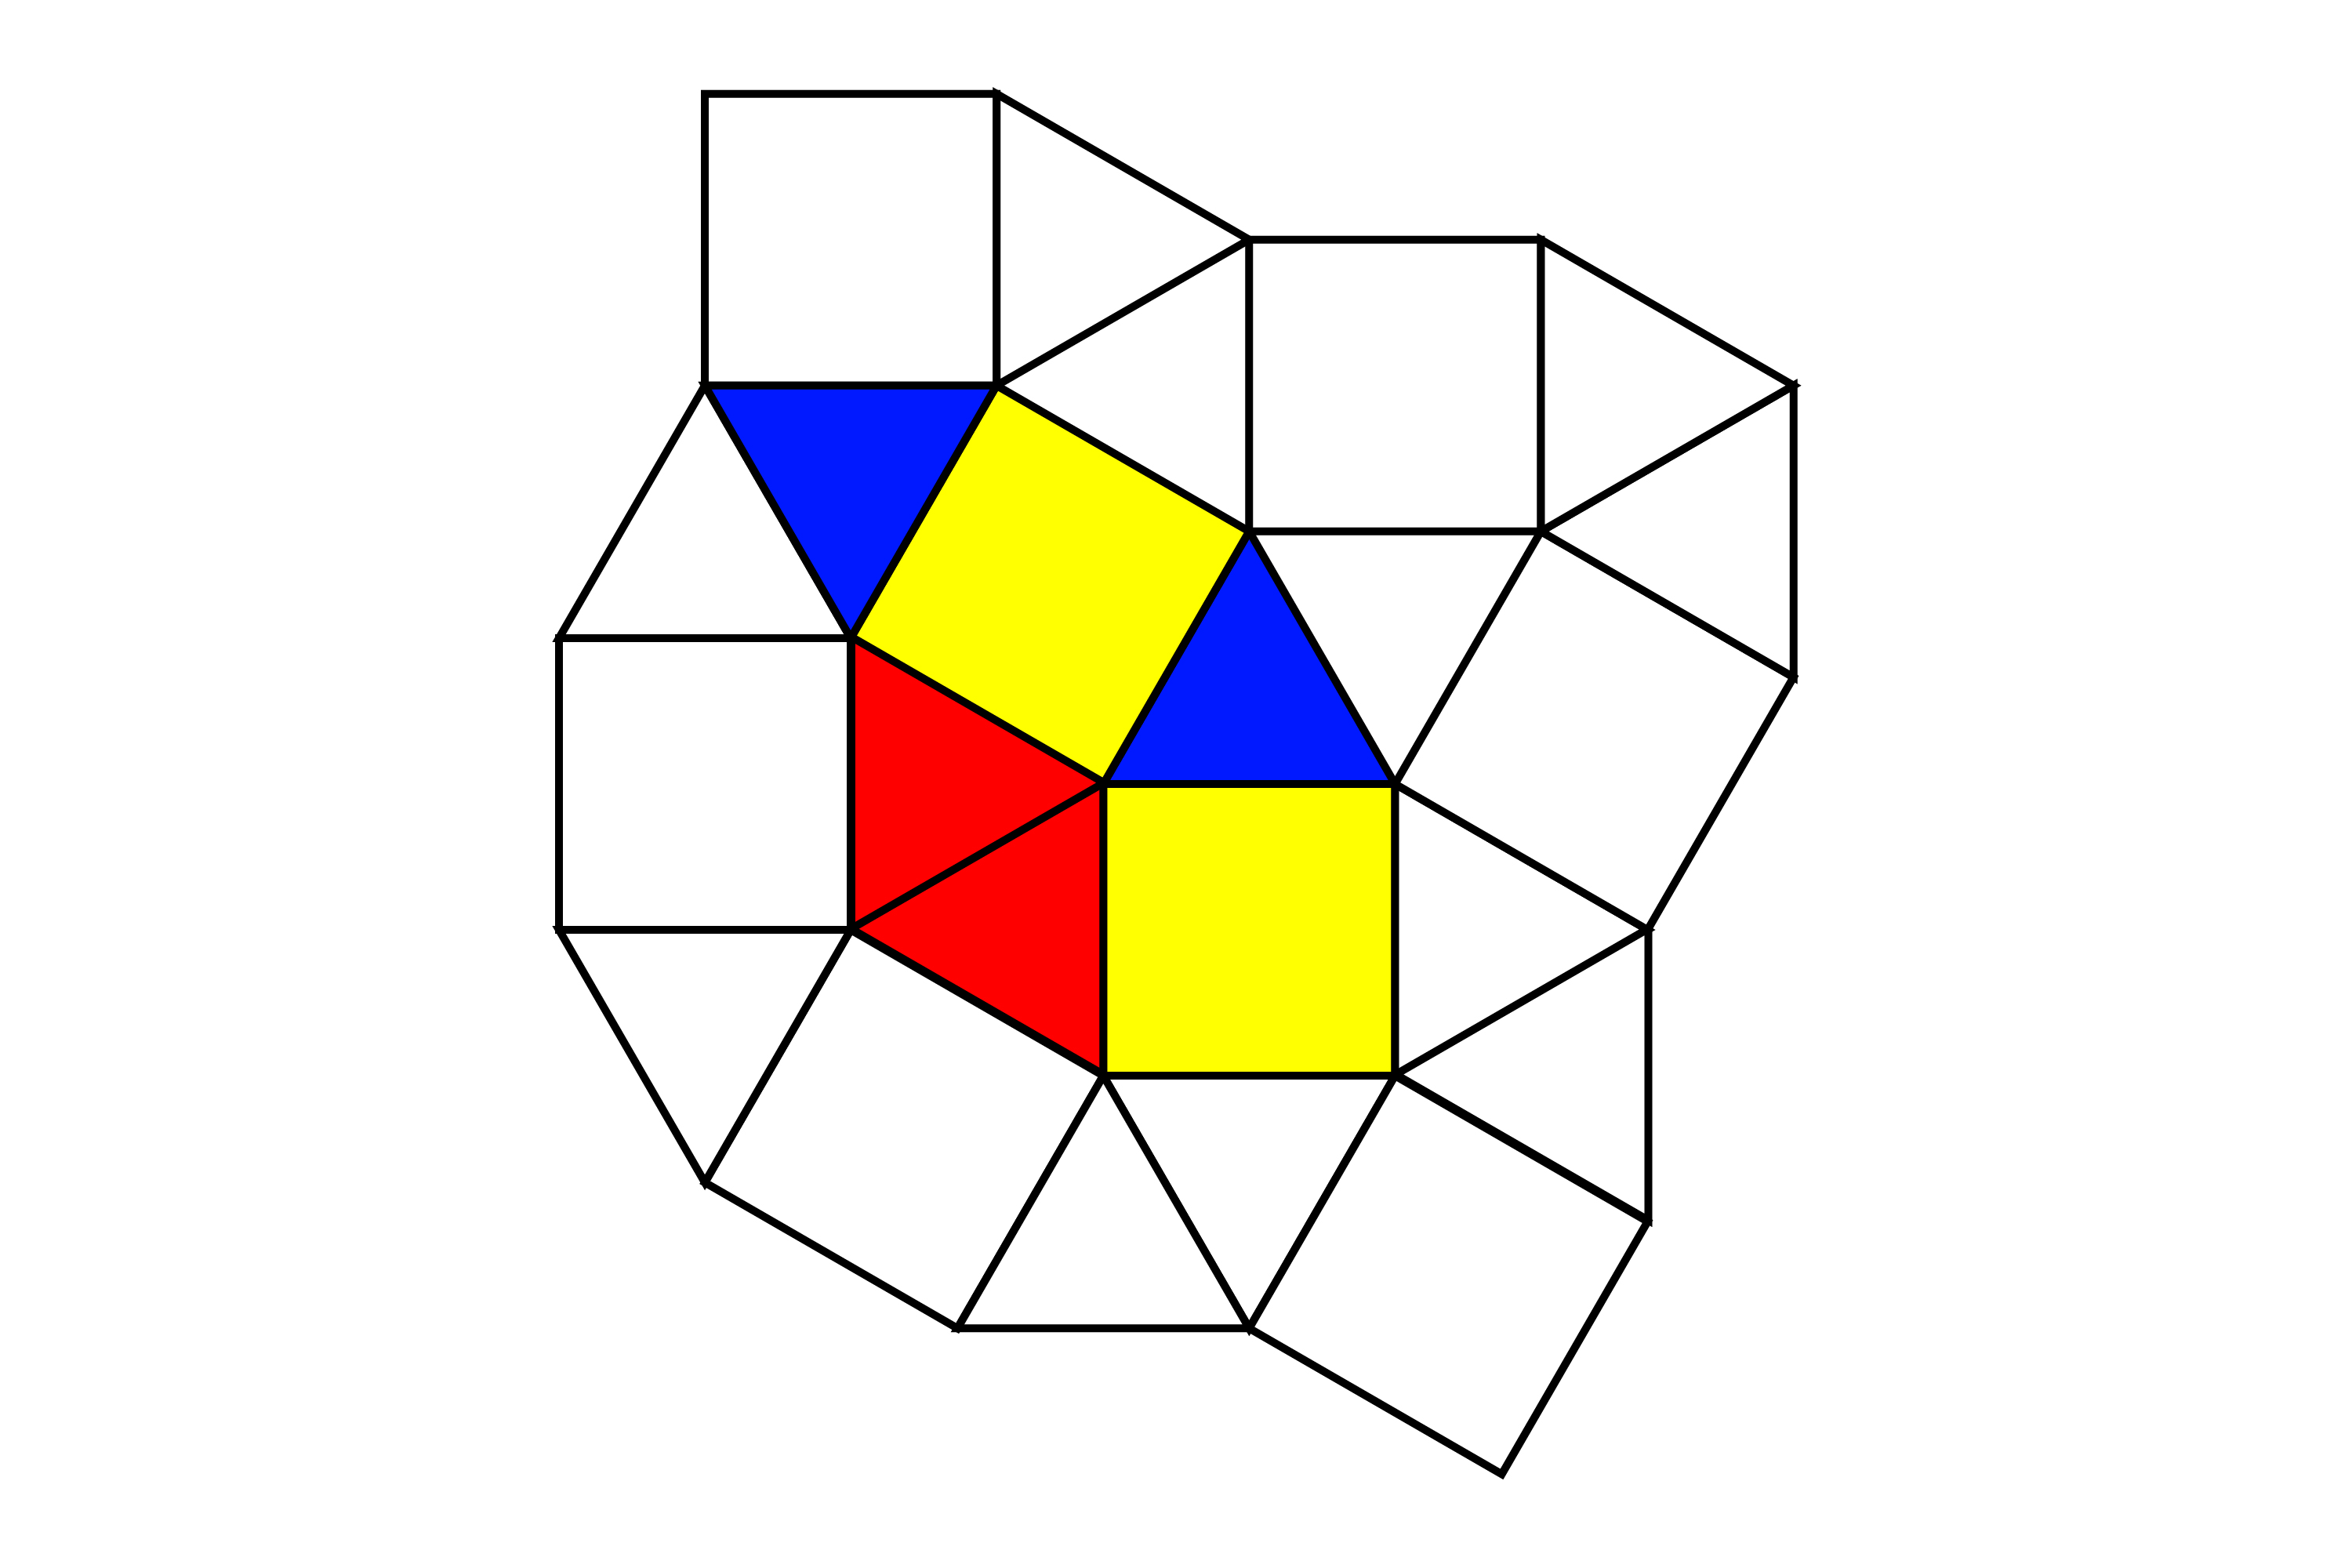 Why can equilateral triangles and squares form a tessellation